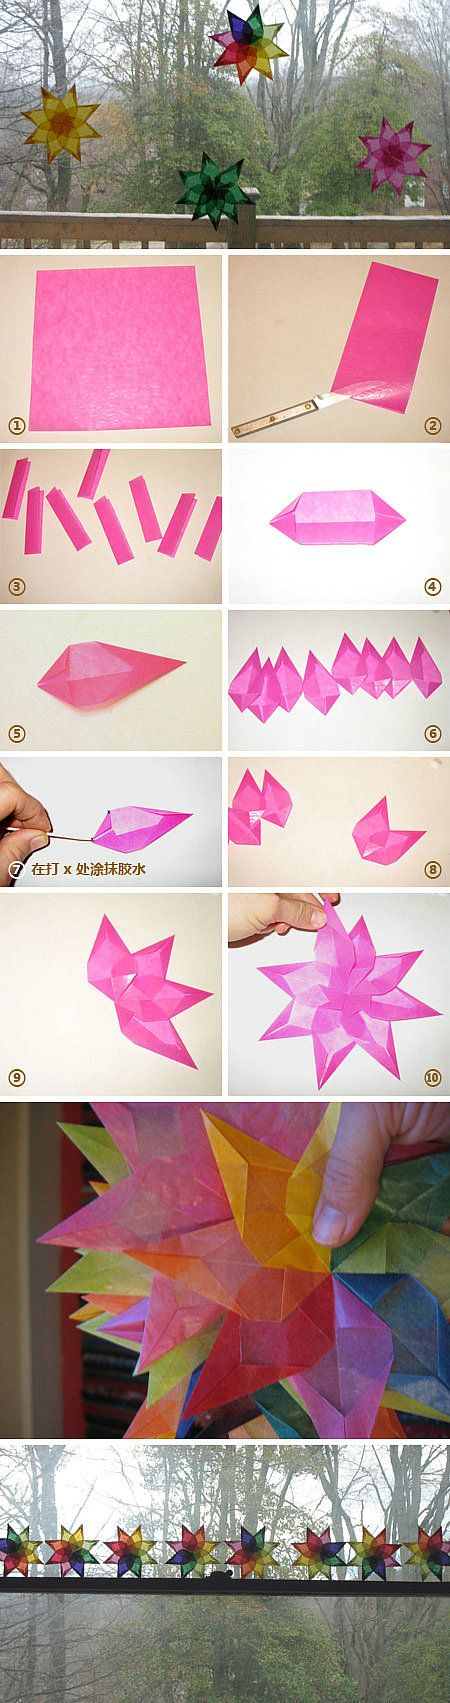 tissue paper window decorations :)